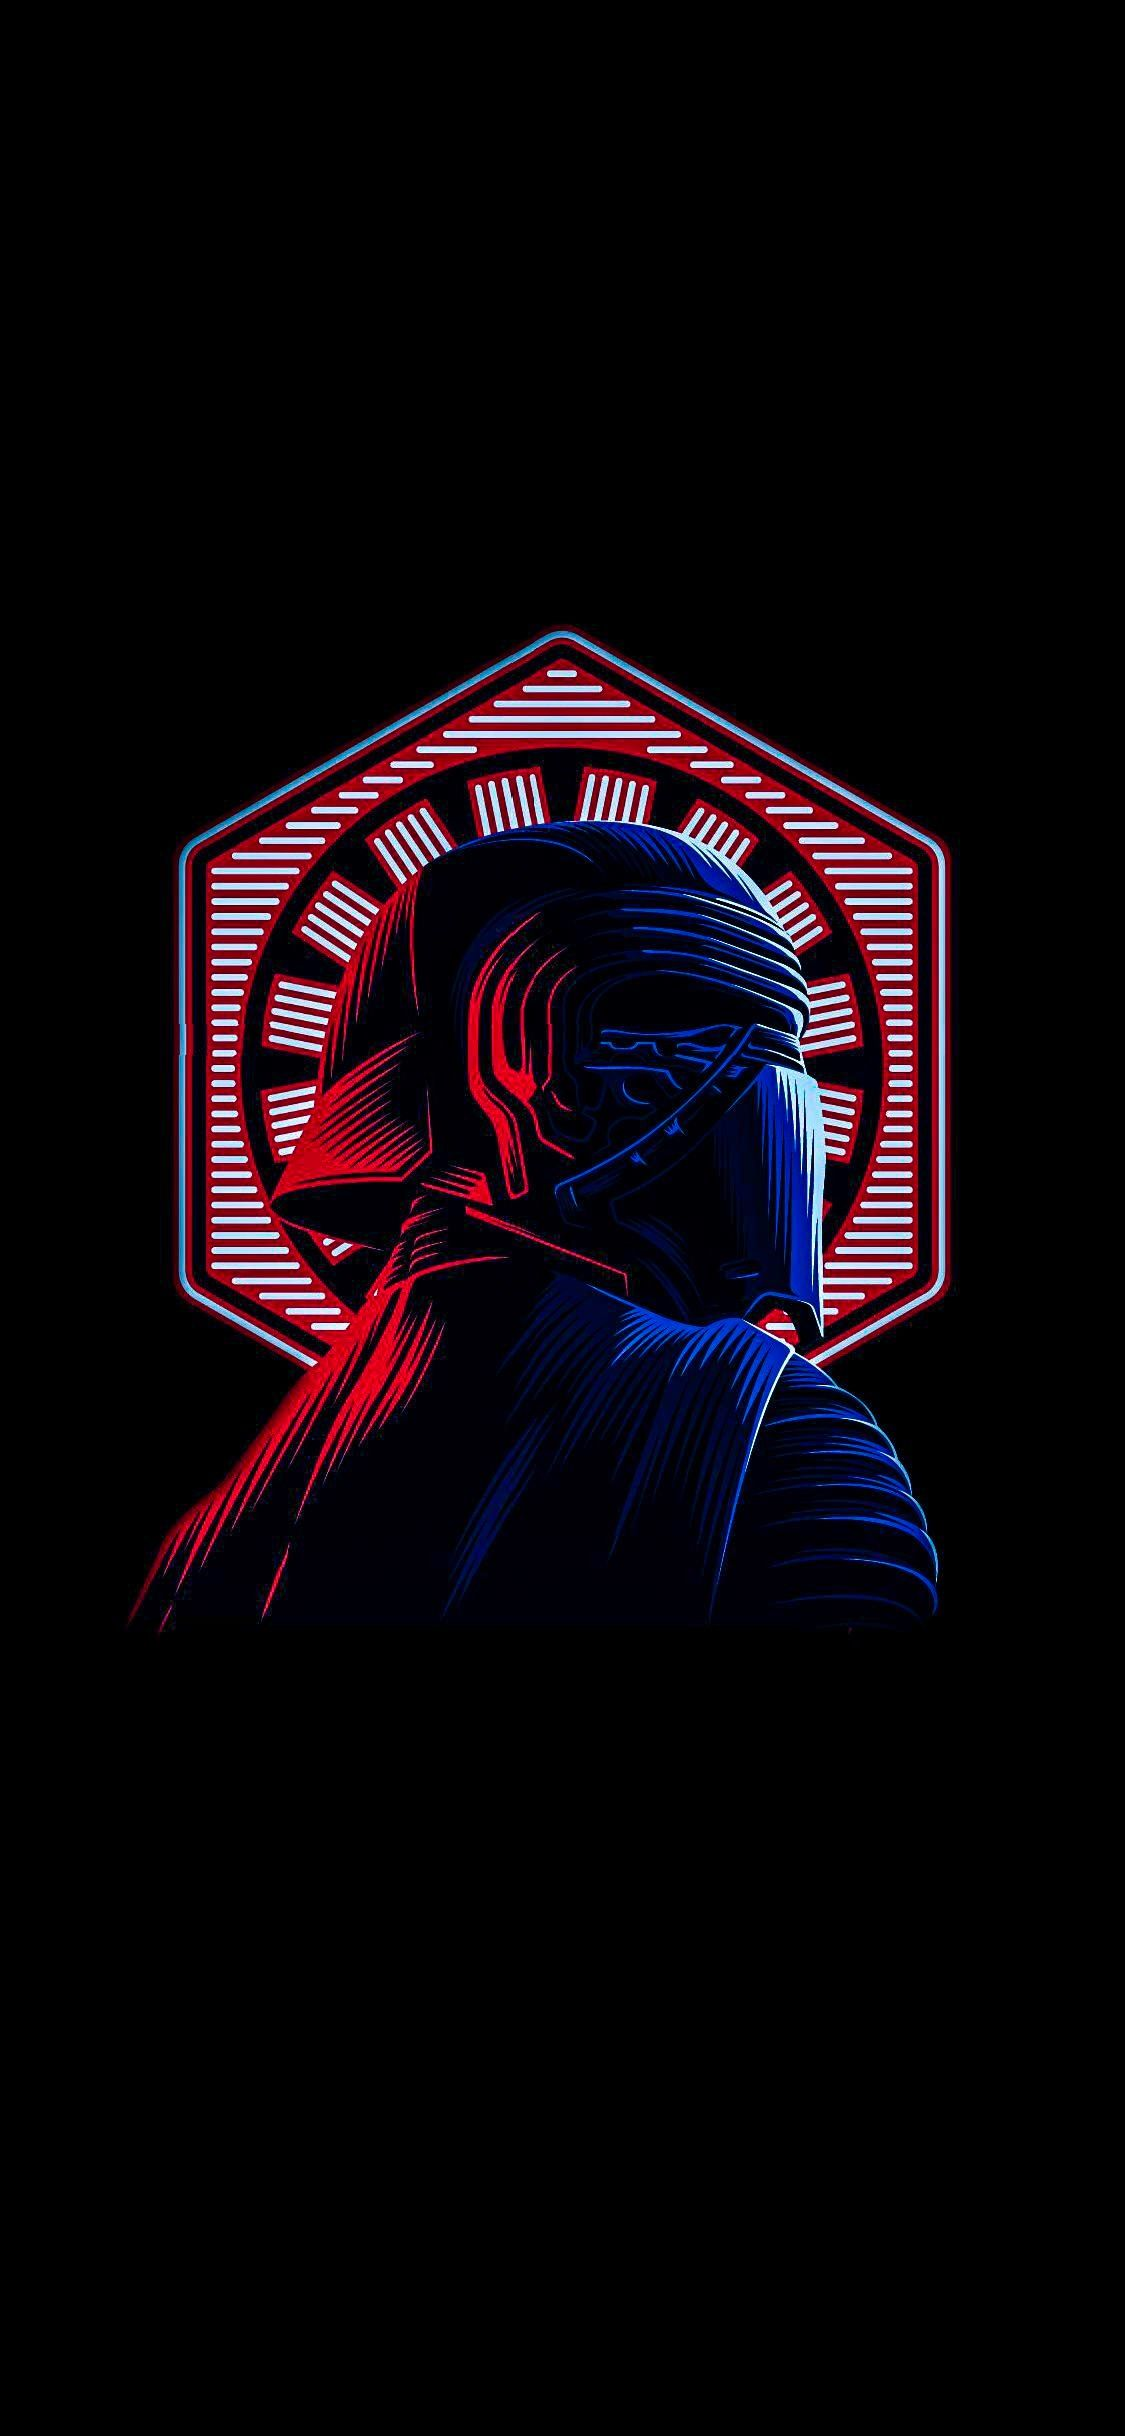 Star Wars Iphone Oled Wallpapers